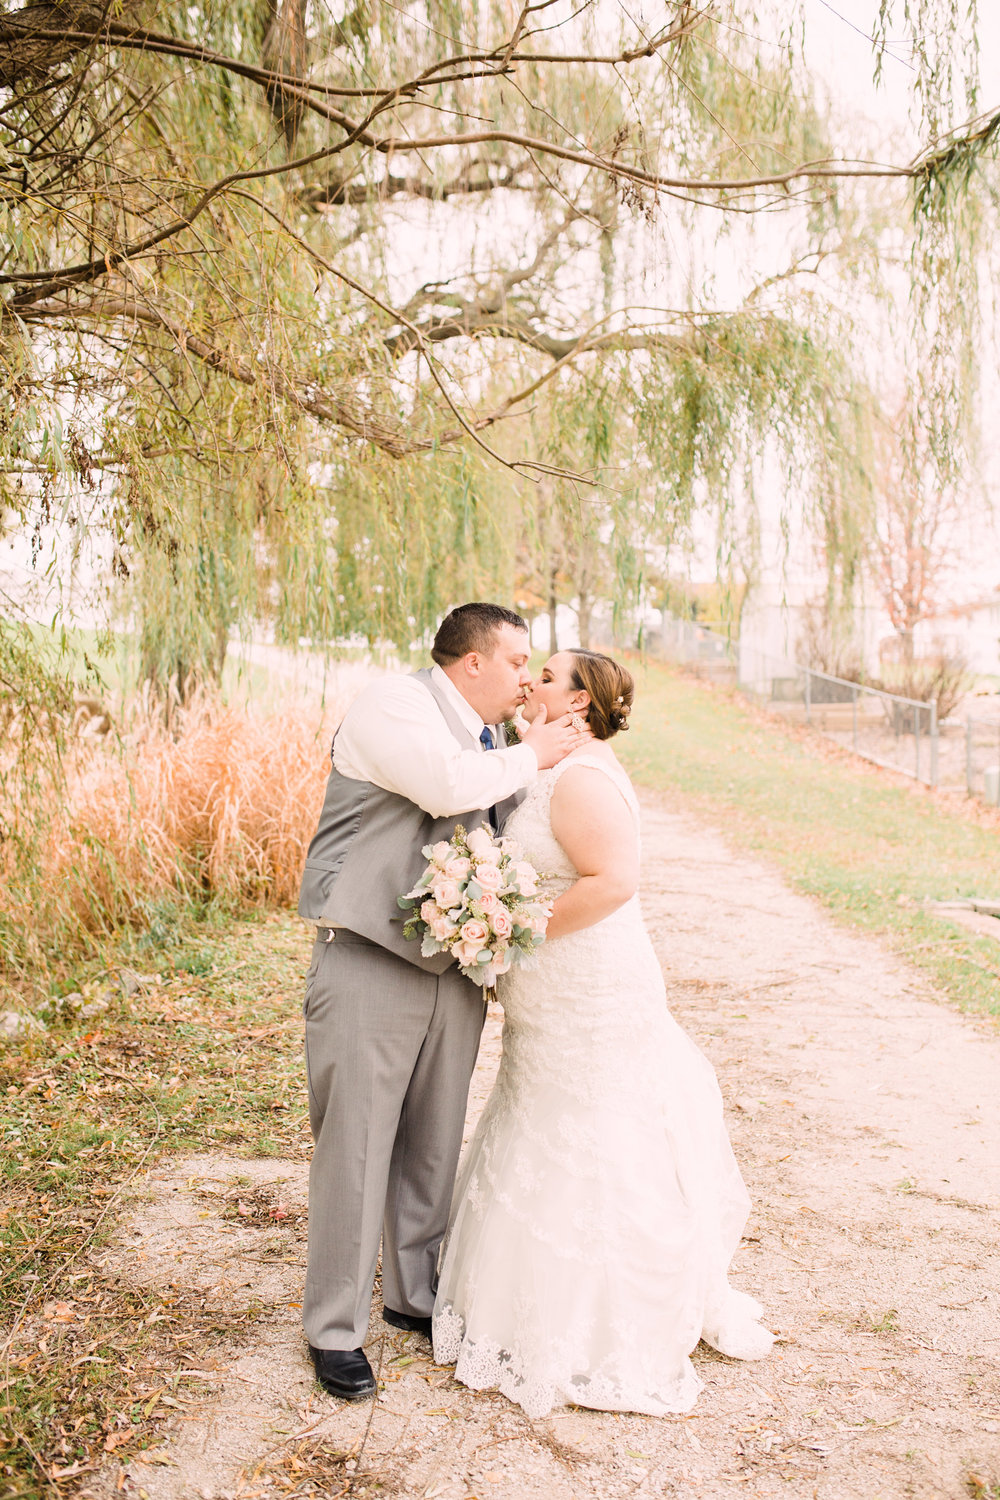 Wedding-Photography_Gatherings-by-Farmhouse-Catering_Nevada-Iowa_Bride+and+Groom+Kissing+under+willows-iowa+wedding+photographer.jpg